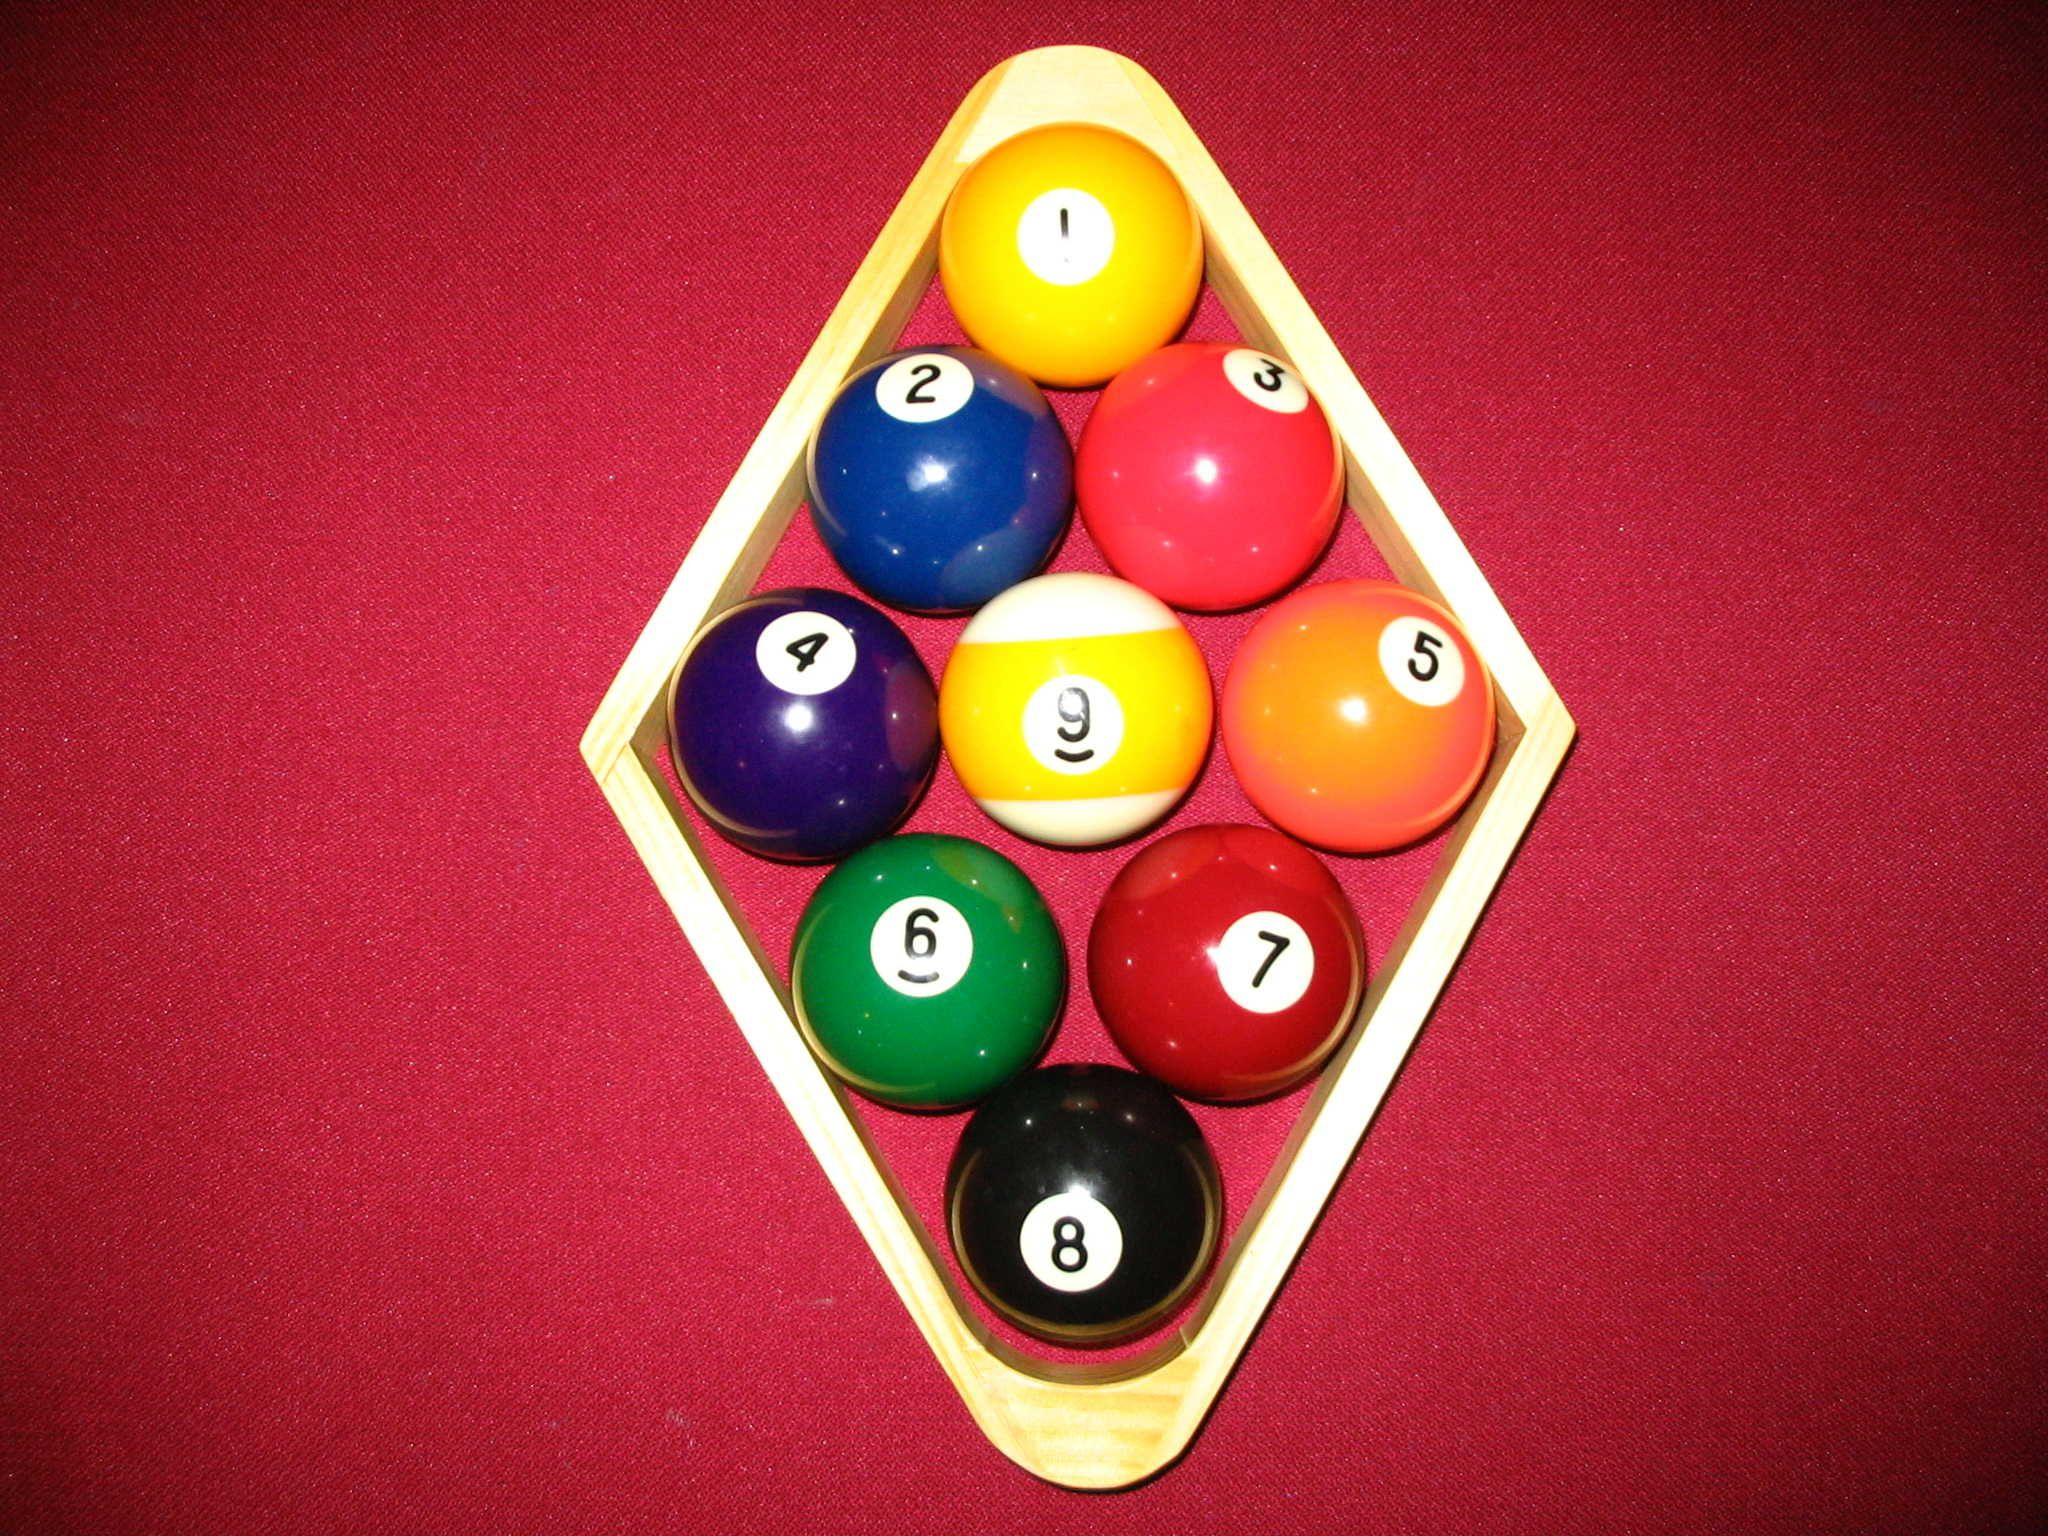 How To Play 9 Ball Pool The Simplified Version Pool Balls Ball Bar Games